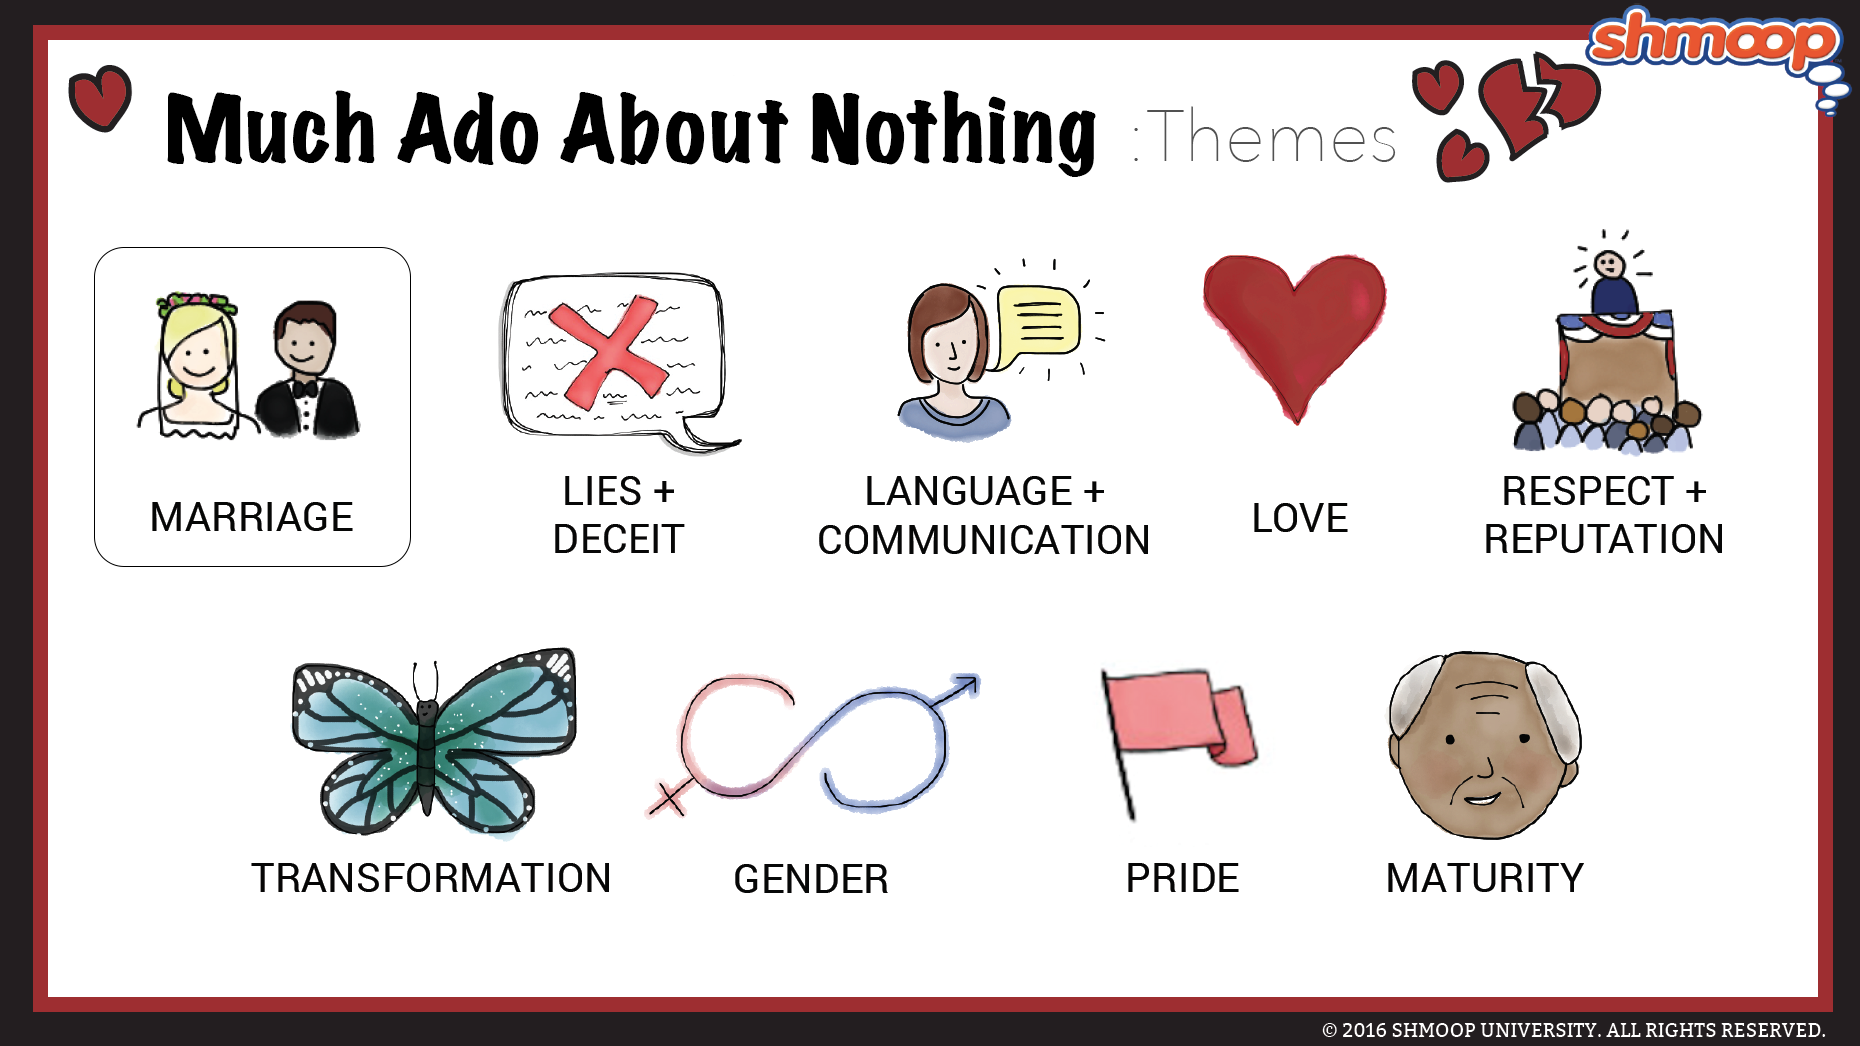 much ado about nothing theme of marriage